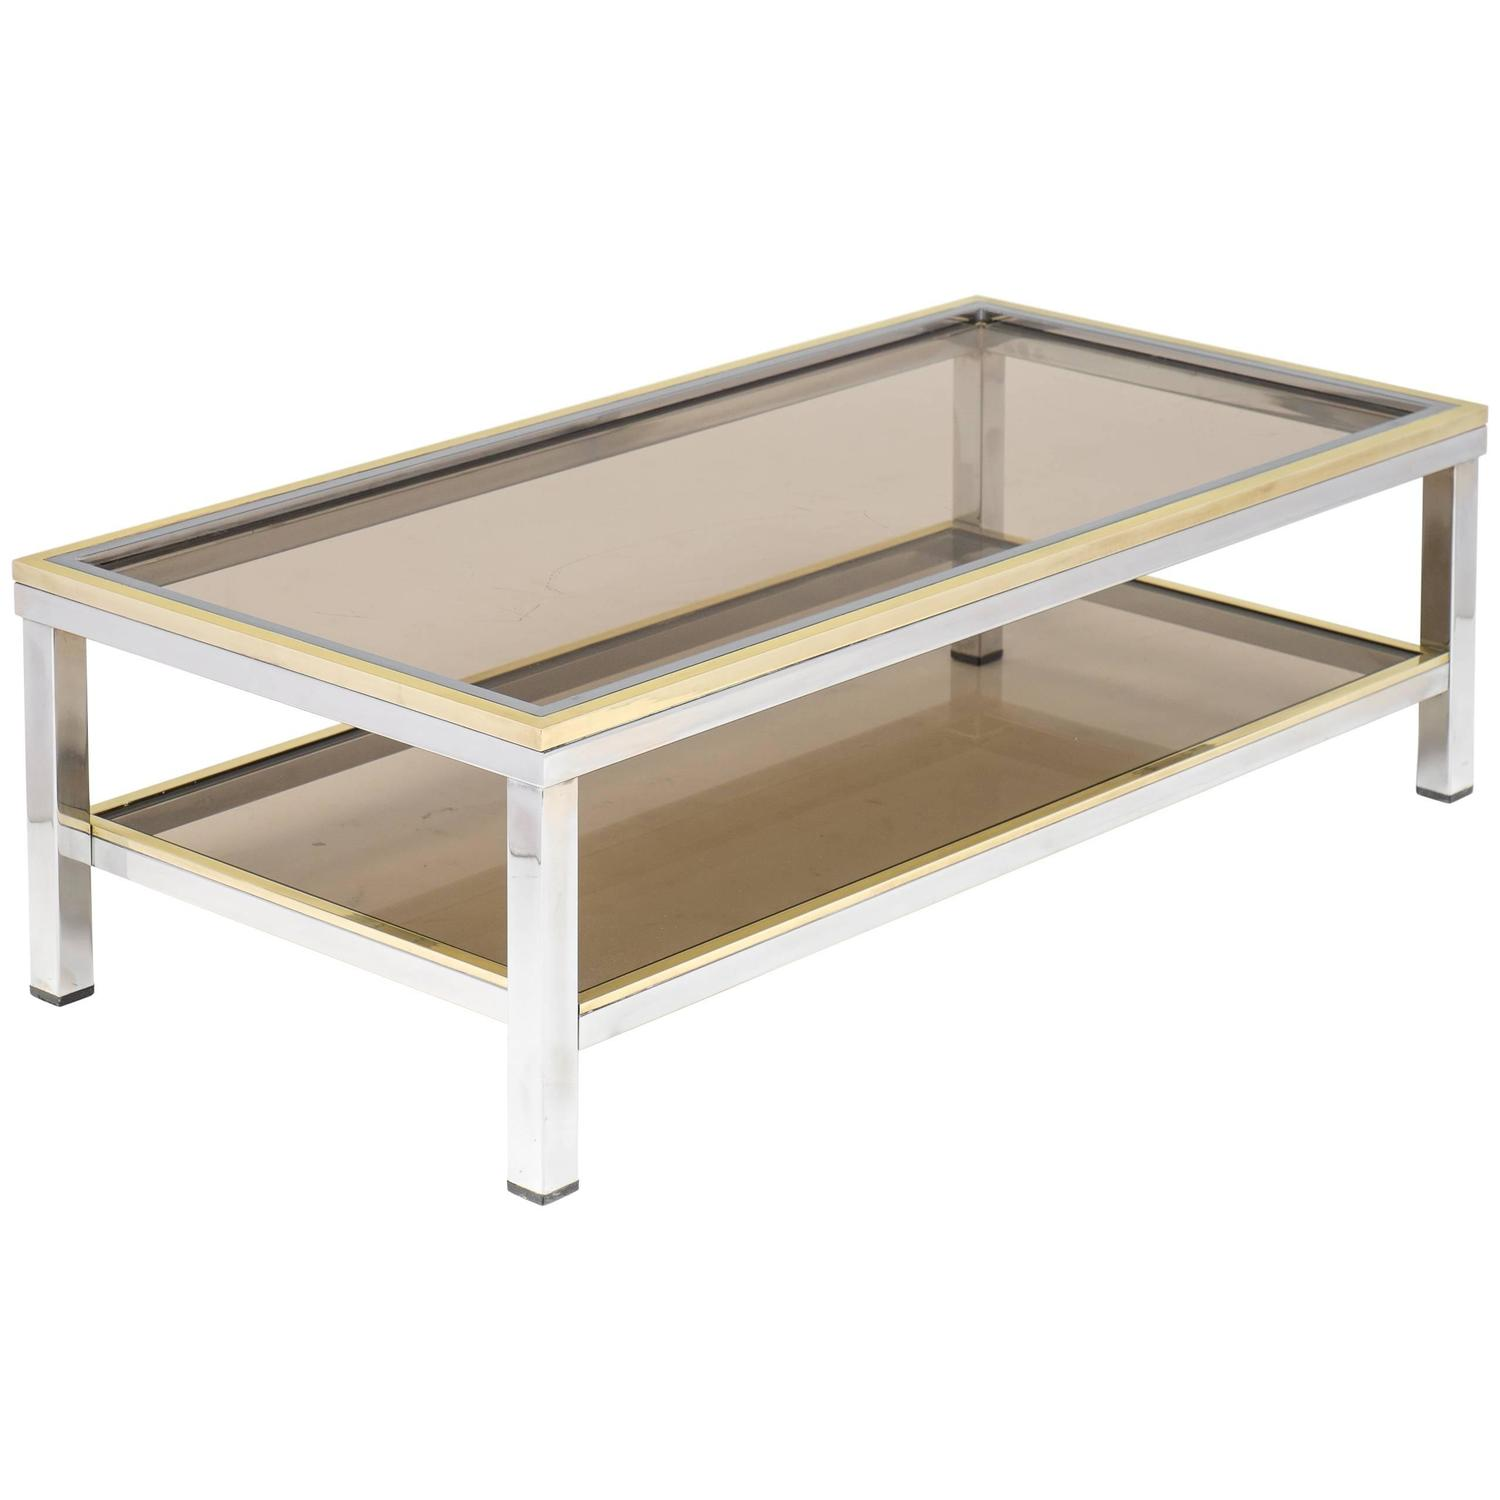 Romeo Rega Sliding Top Coffee Table at 1stdibs